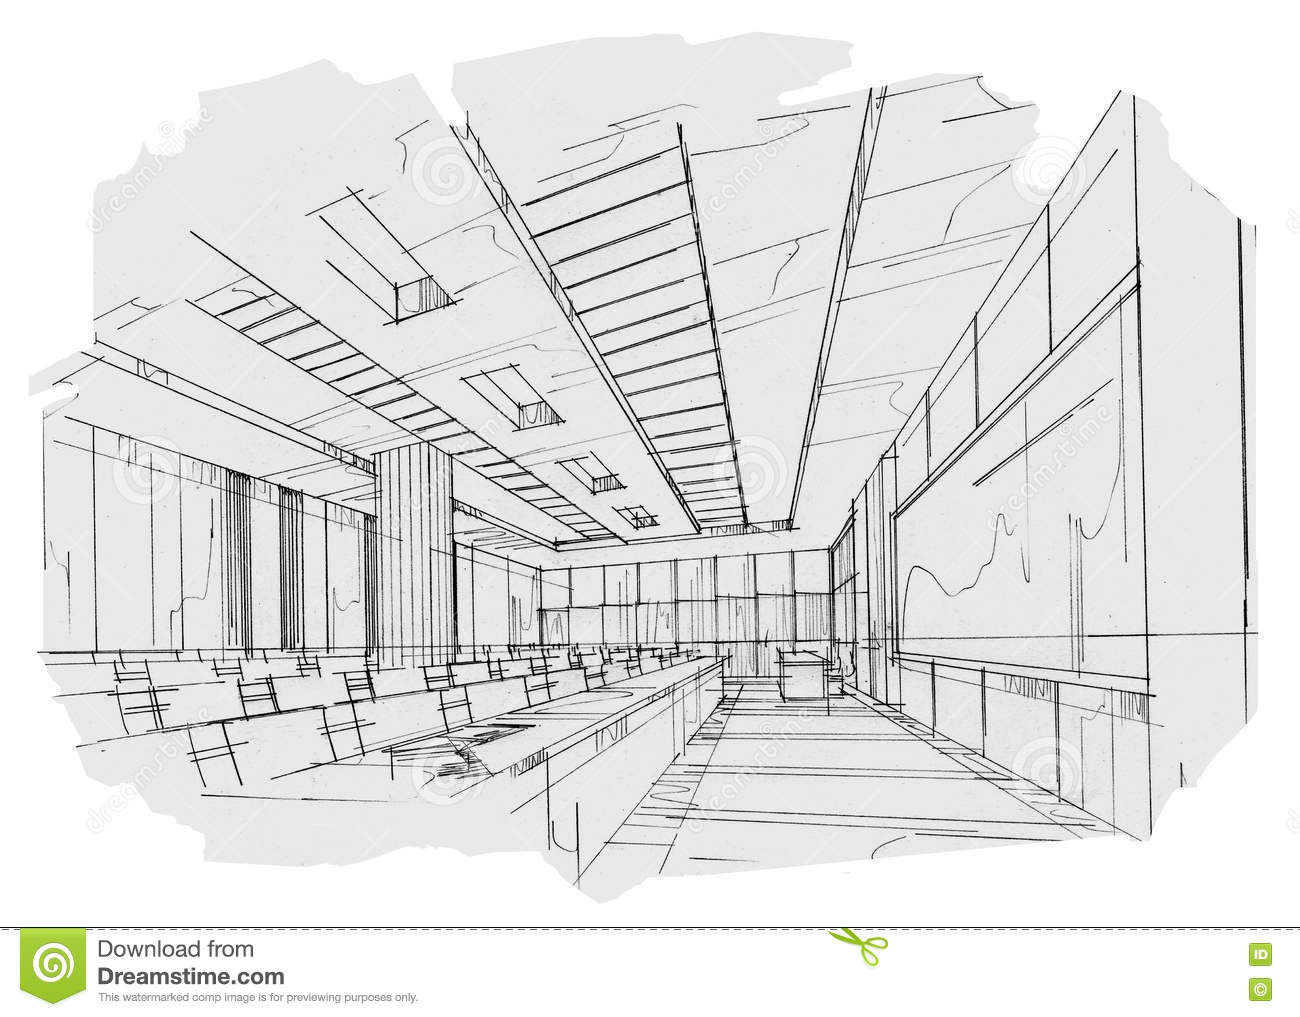 Classroom Design Drawings ~ Sketch interior perspective classroom black and white